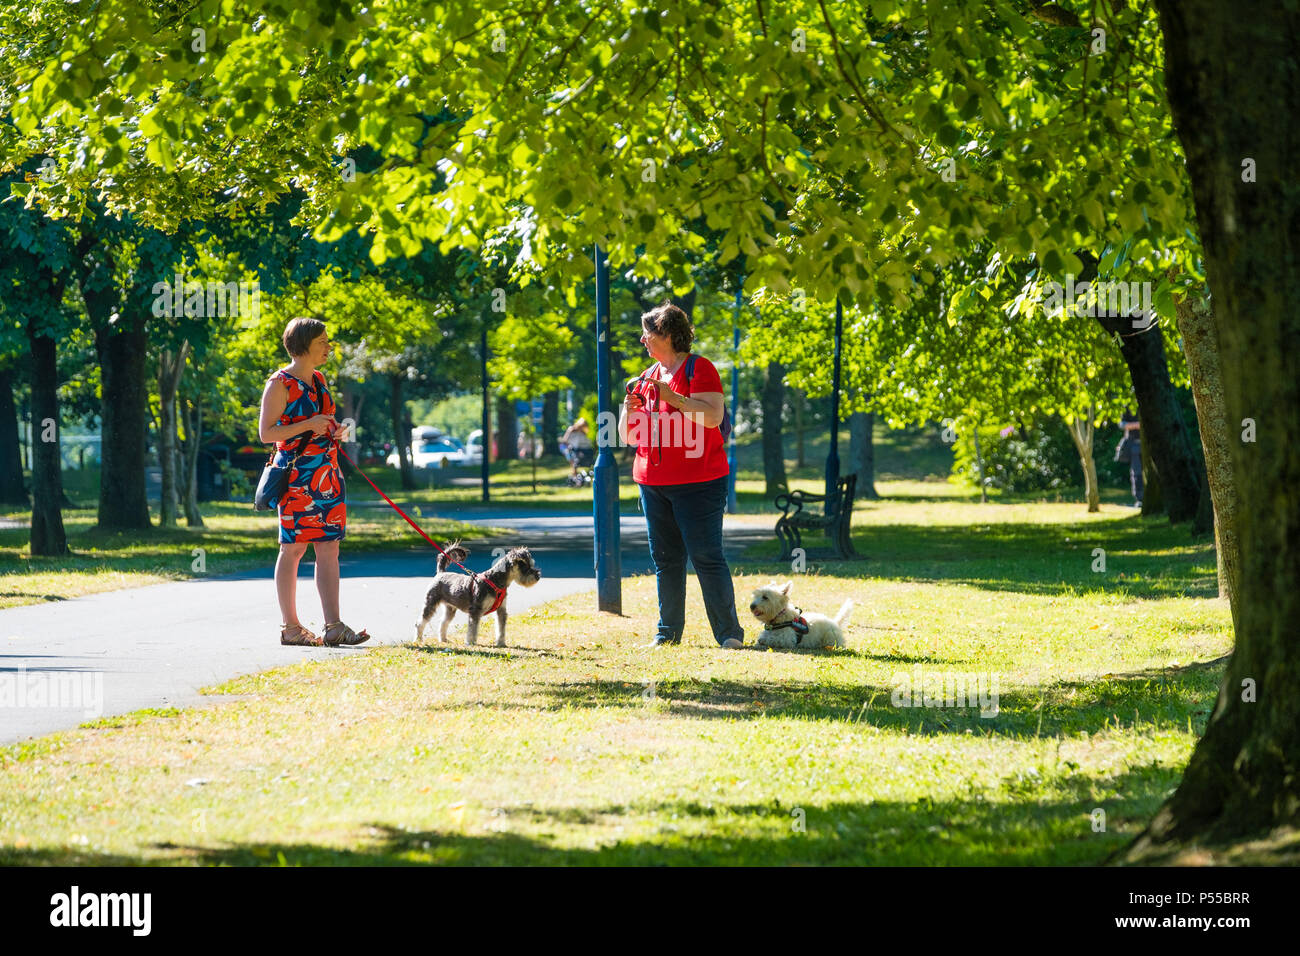 Aberystwyth, Wales, UK. 25th June, 2018.   UK Weather:  People walking their dogs along the tree lined Plas Crug park in Aberystwyth, at the start of what promises to be yet another scintillating day of hot unbroken sunshine.  The UK is heading  into a mini heatwave, with temperatures forecast to hit 29º or 30º Celsius by the middle of the week  photo © Keith Morris / Alamy Live News Stock Photo